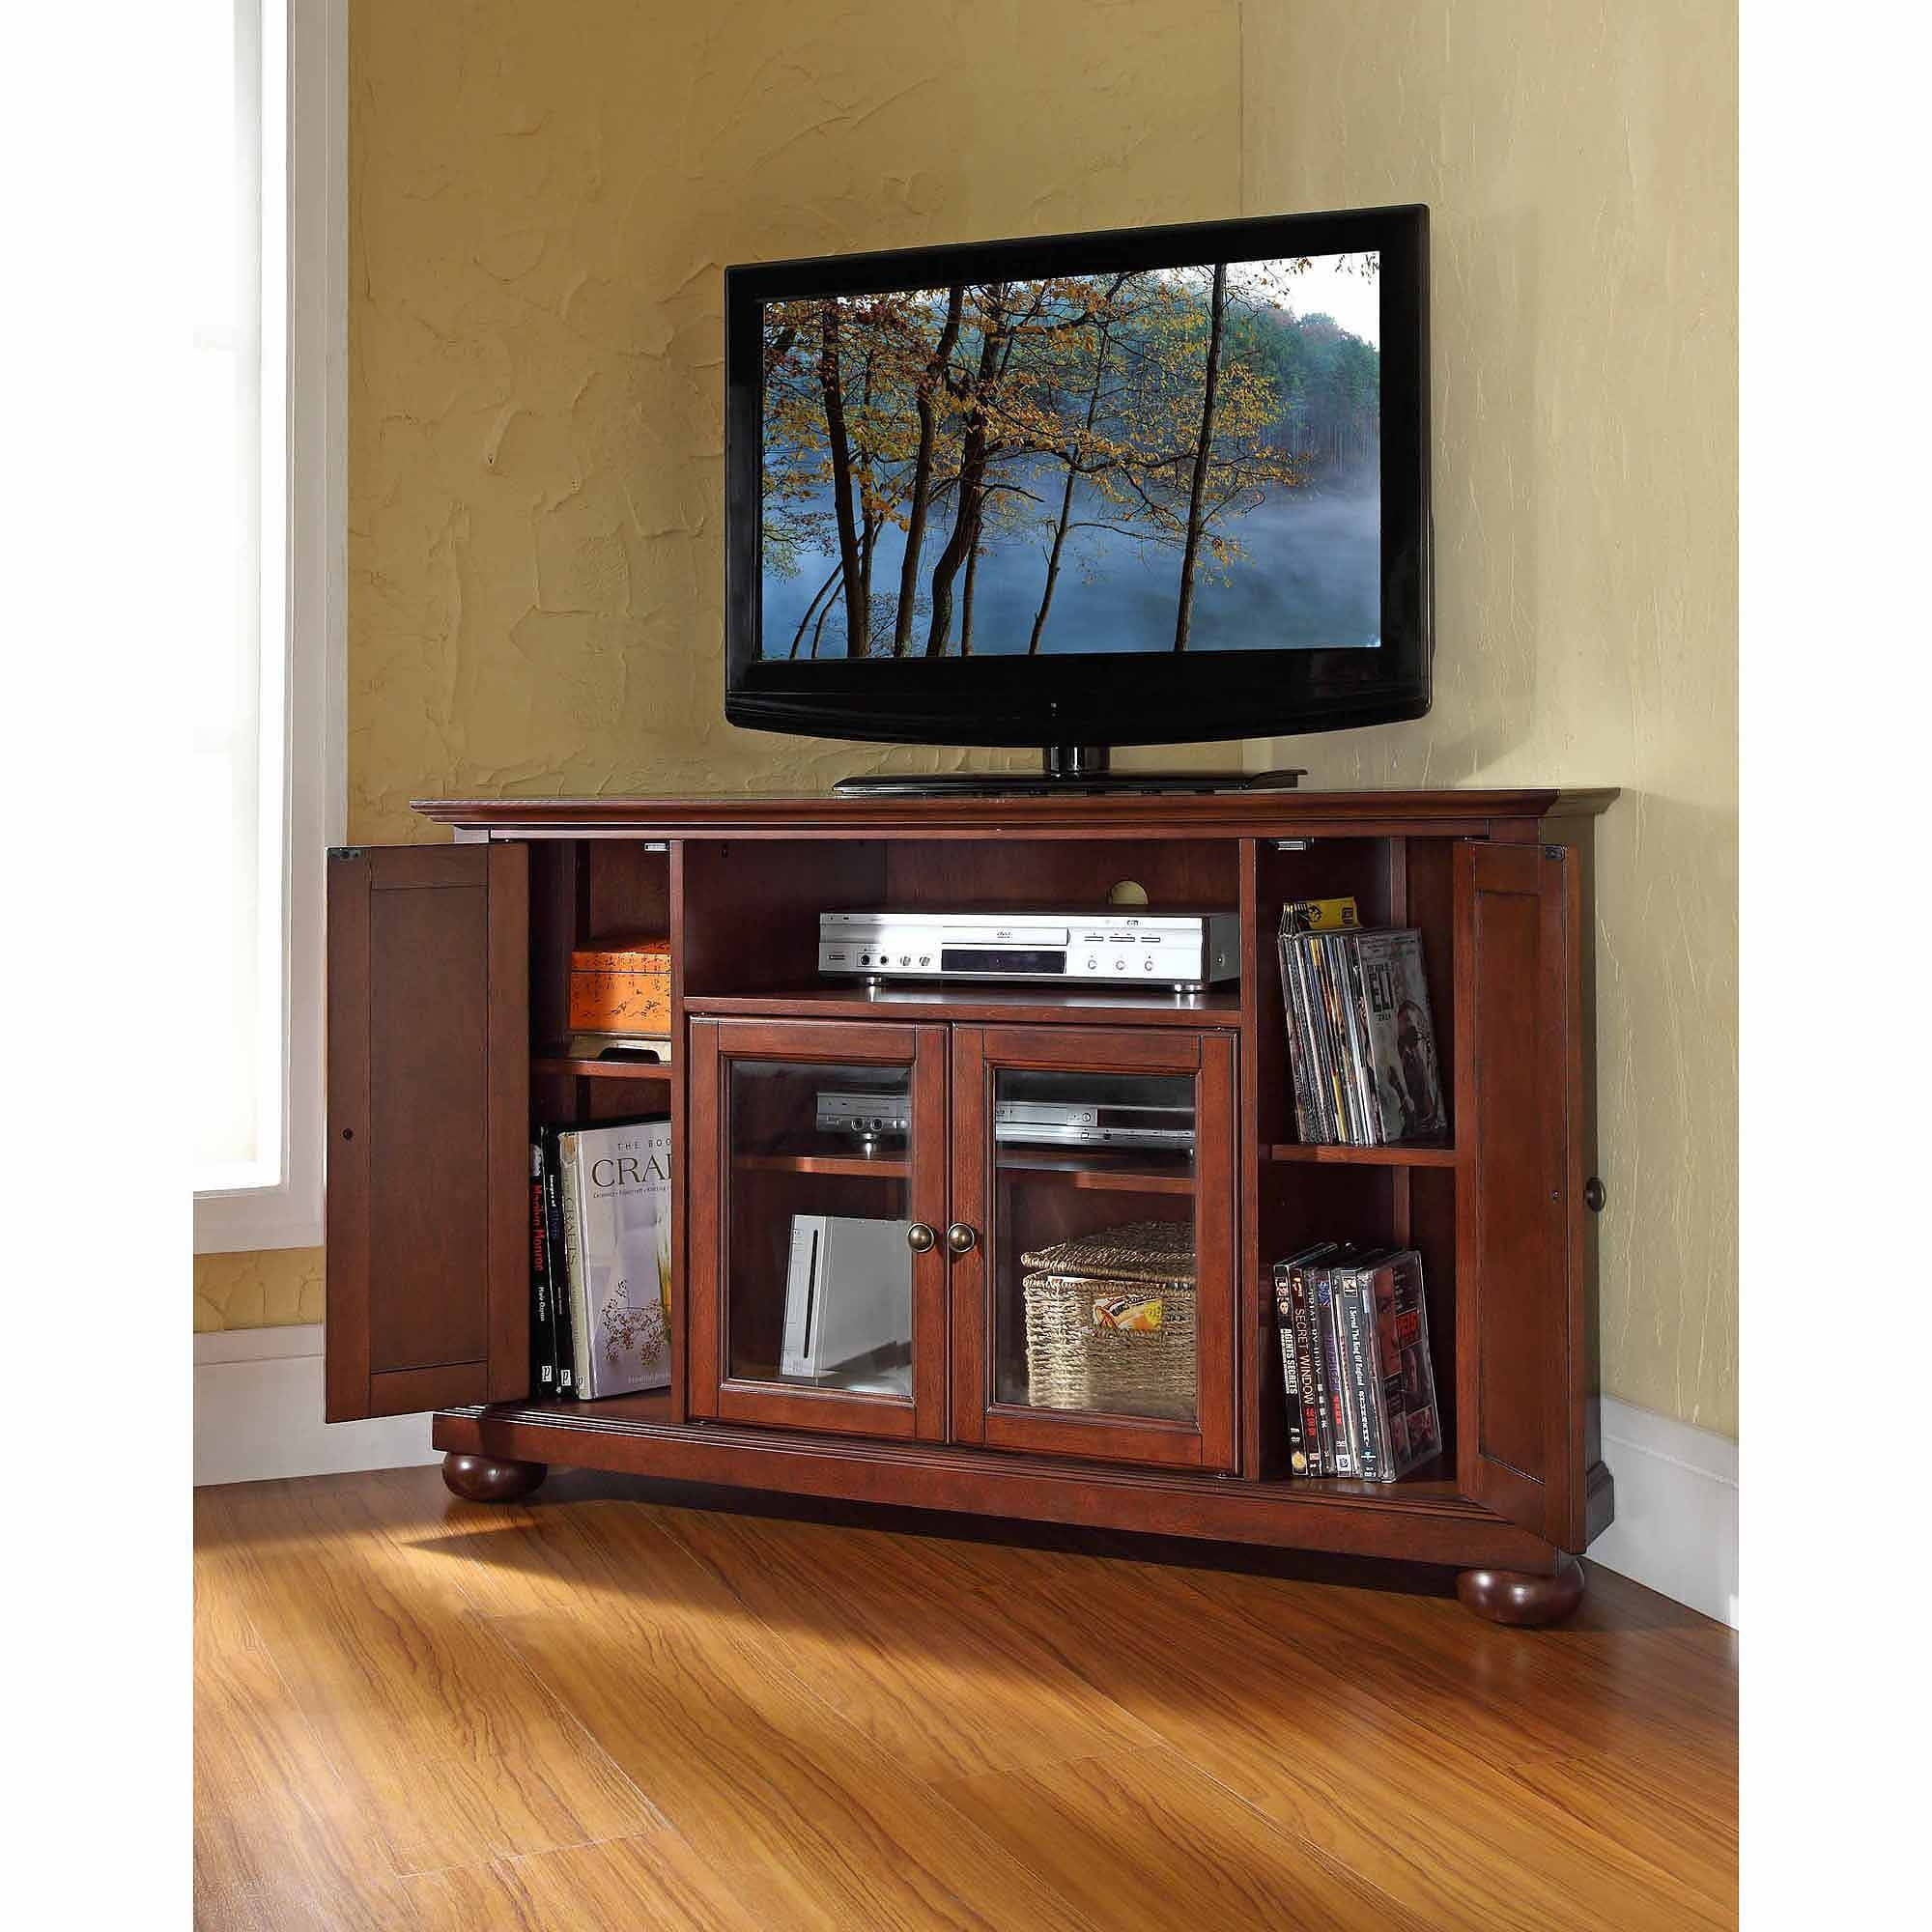 Crosley Furniture Alexandria Corner Tv Stand For Tvs Up To 48 With Regard To Wood Corner Tv Cabinets (View 14 of 15)